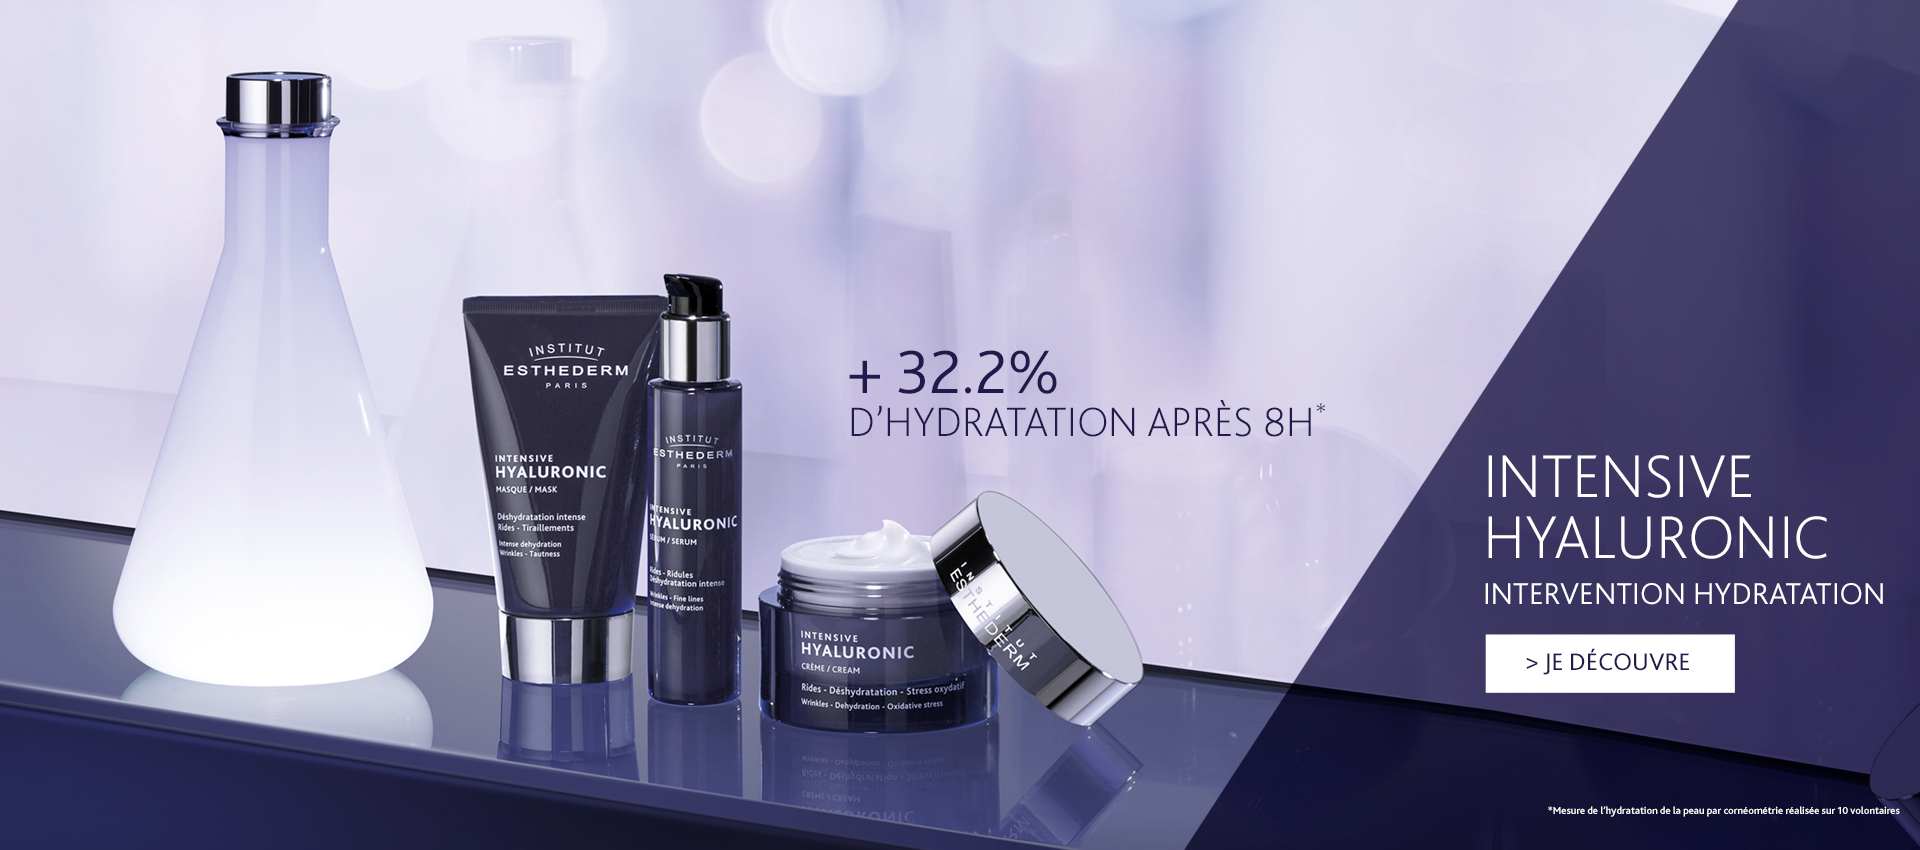 Intervention hydratation - Intensive Hyaluronic